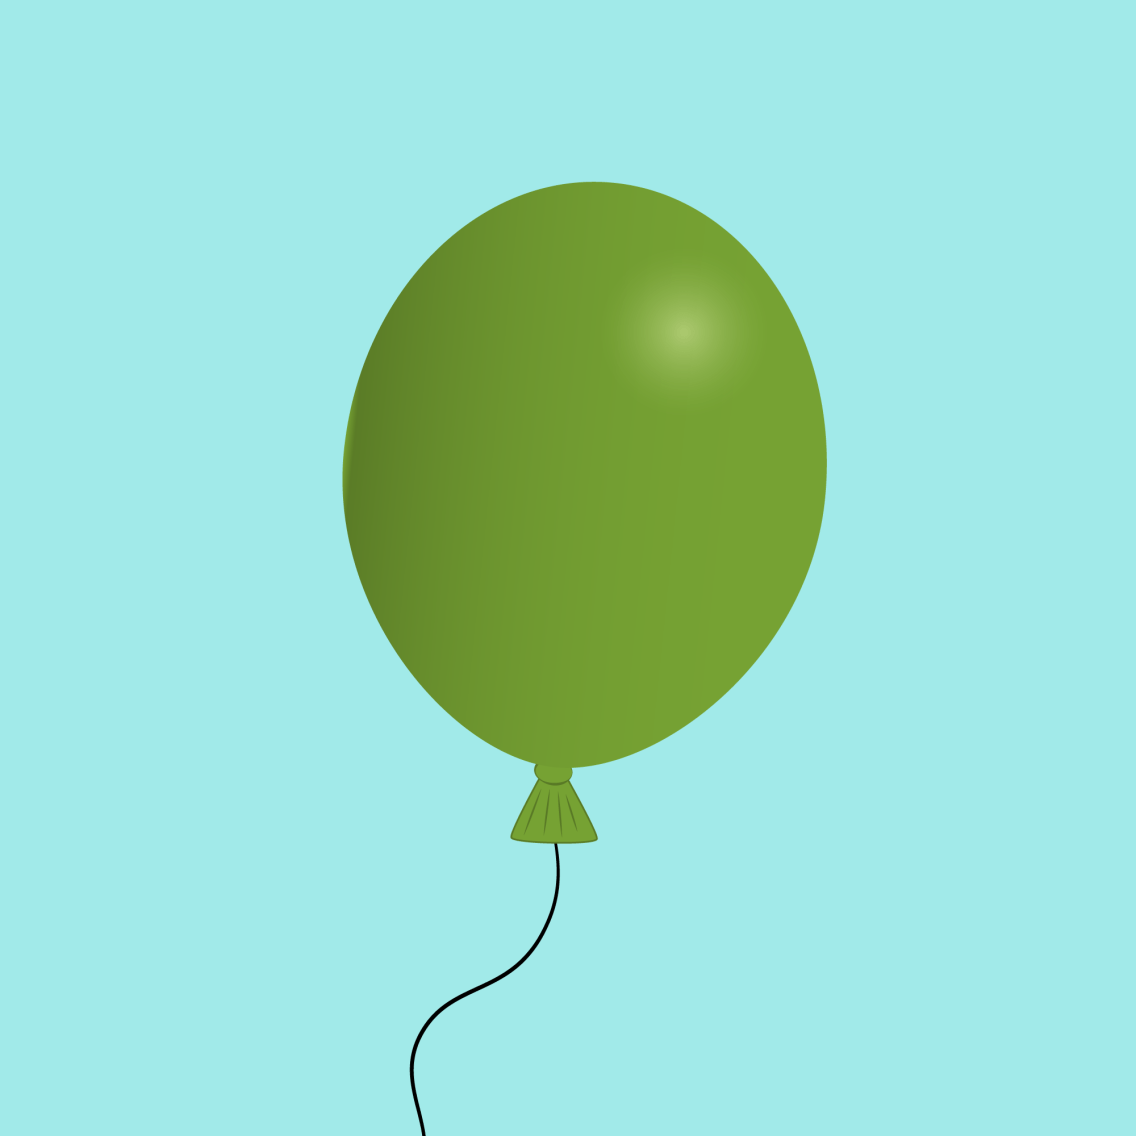 balloon-76A233-featured-image